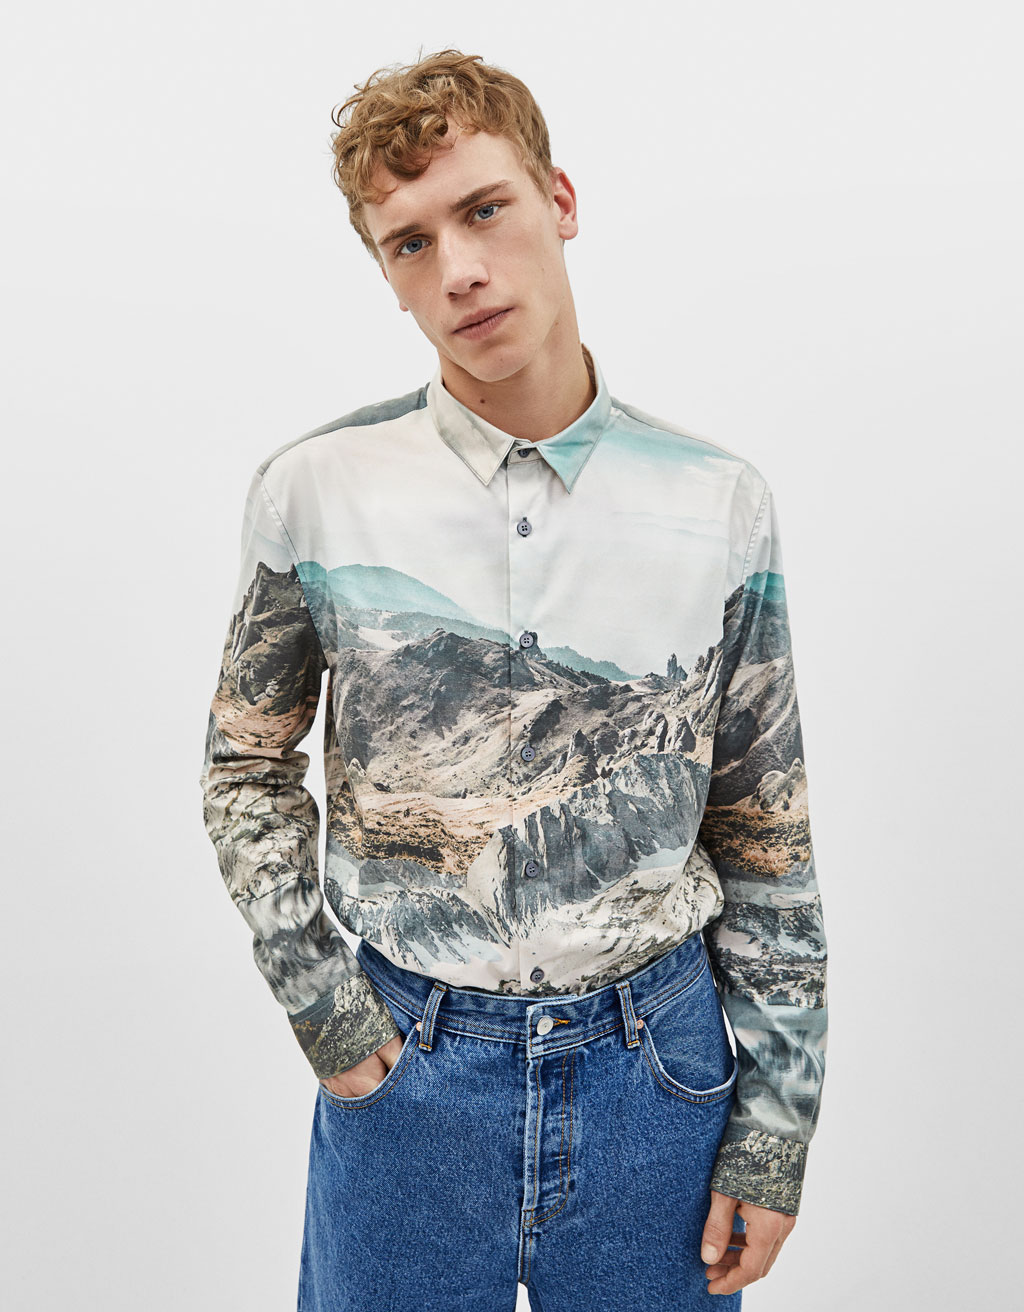 Loose fitting shirt with photo print